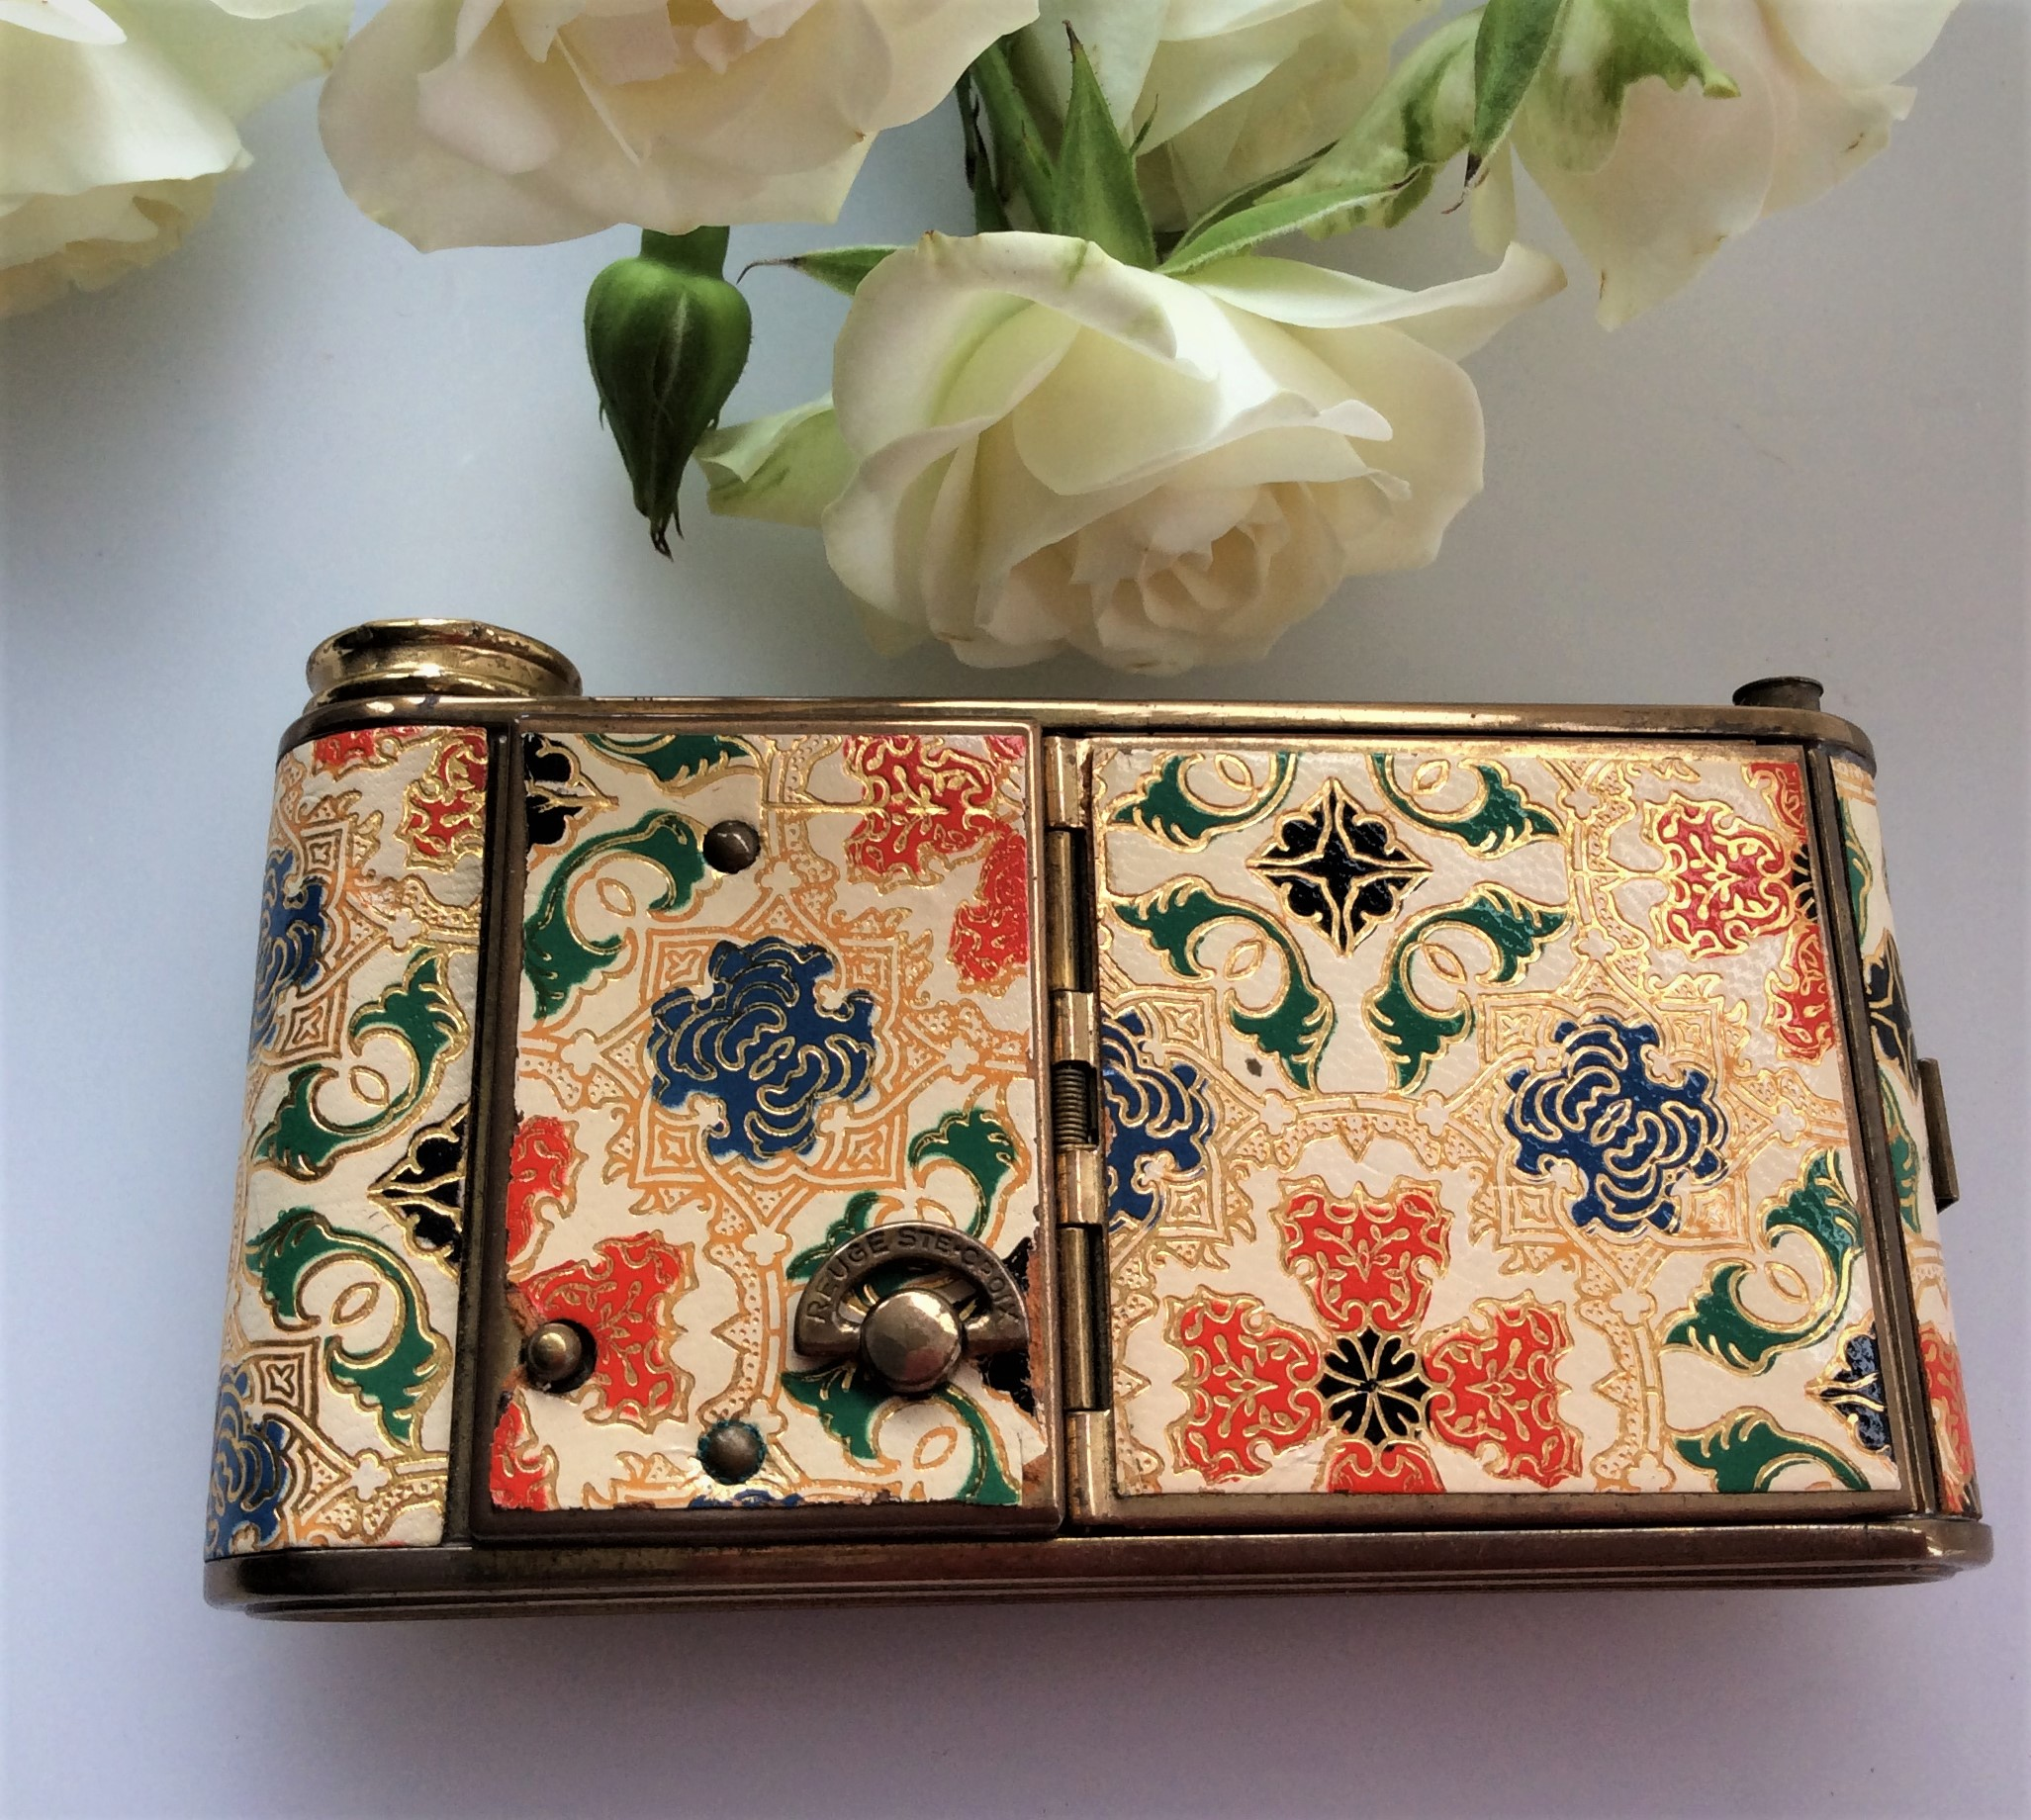 Rare Vintage 30s Musical Camera Style Brass and Tooled Leather Combination Vanity Compact with original box.